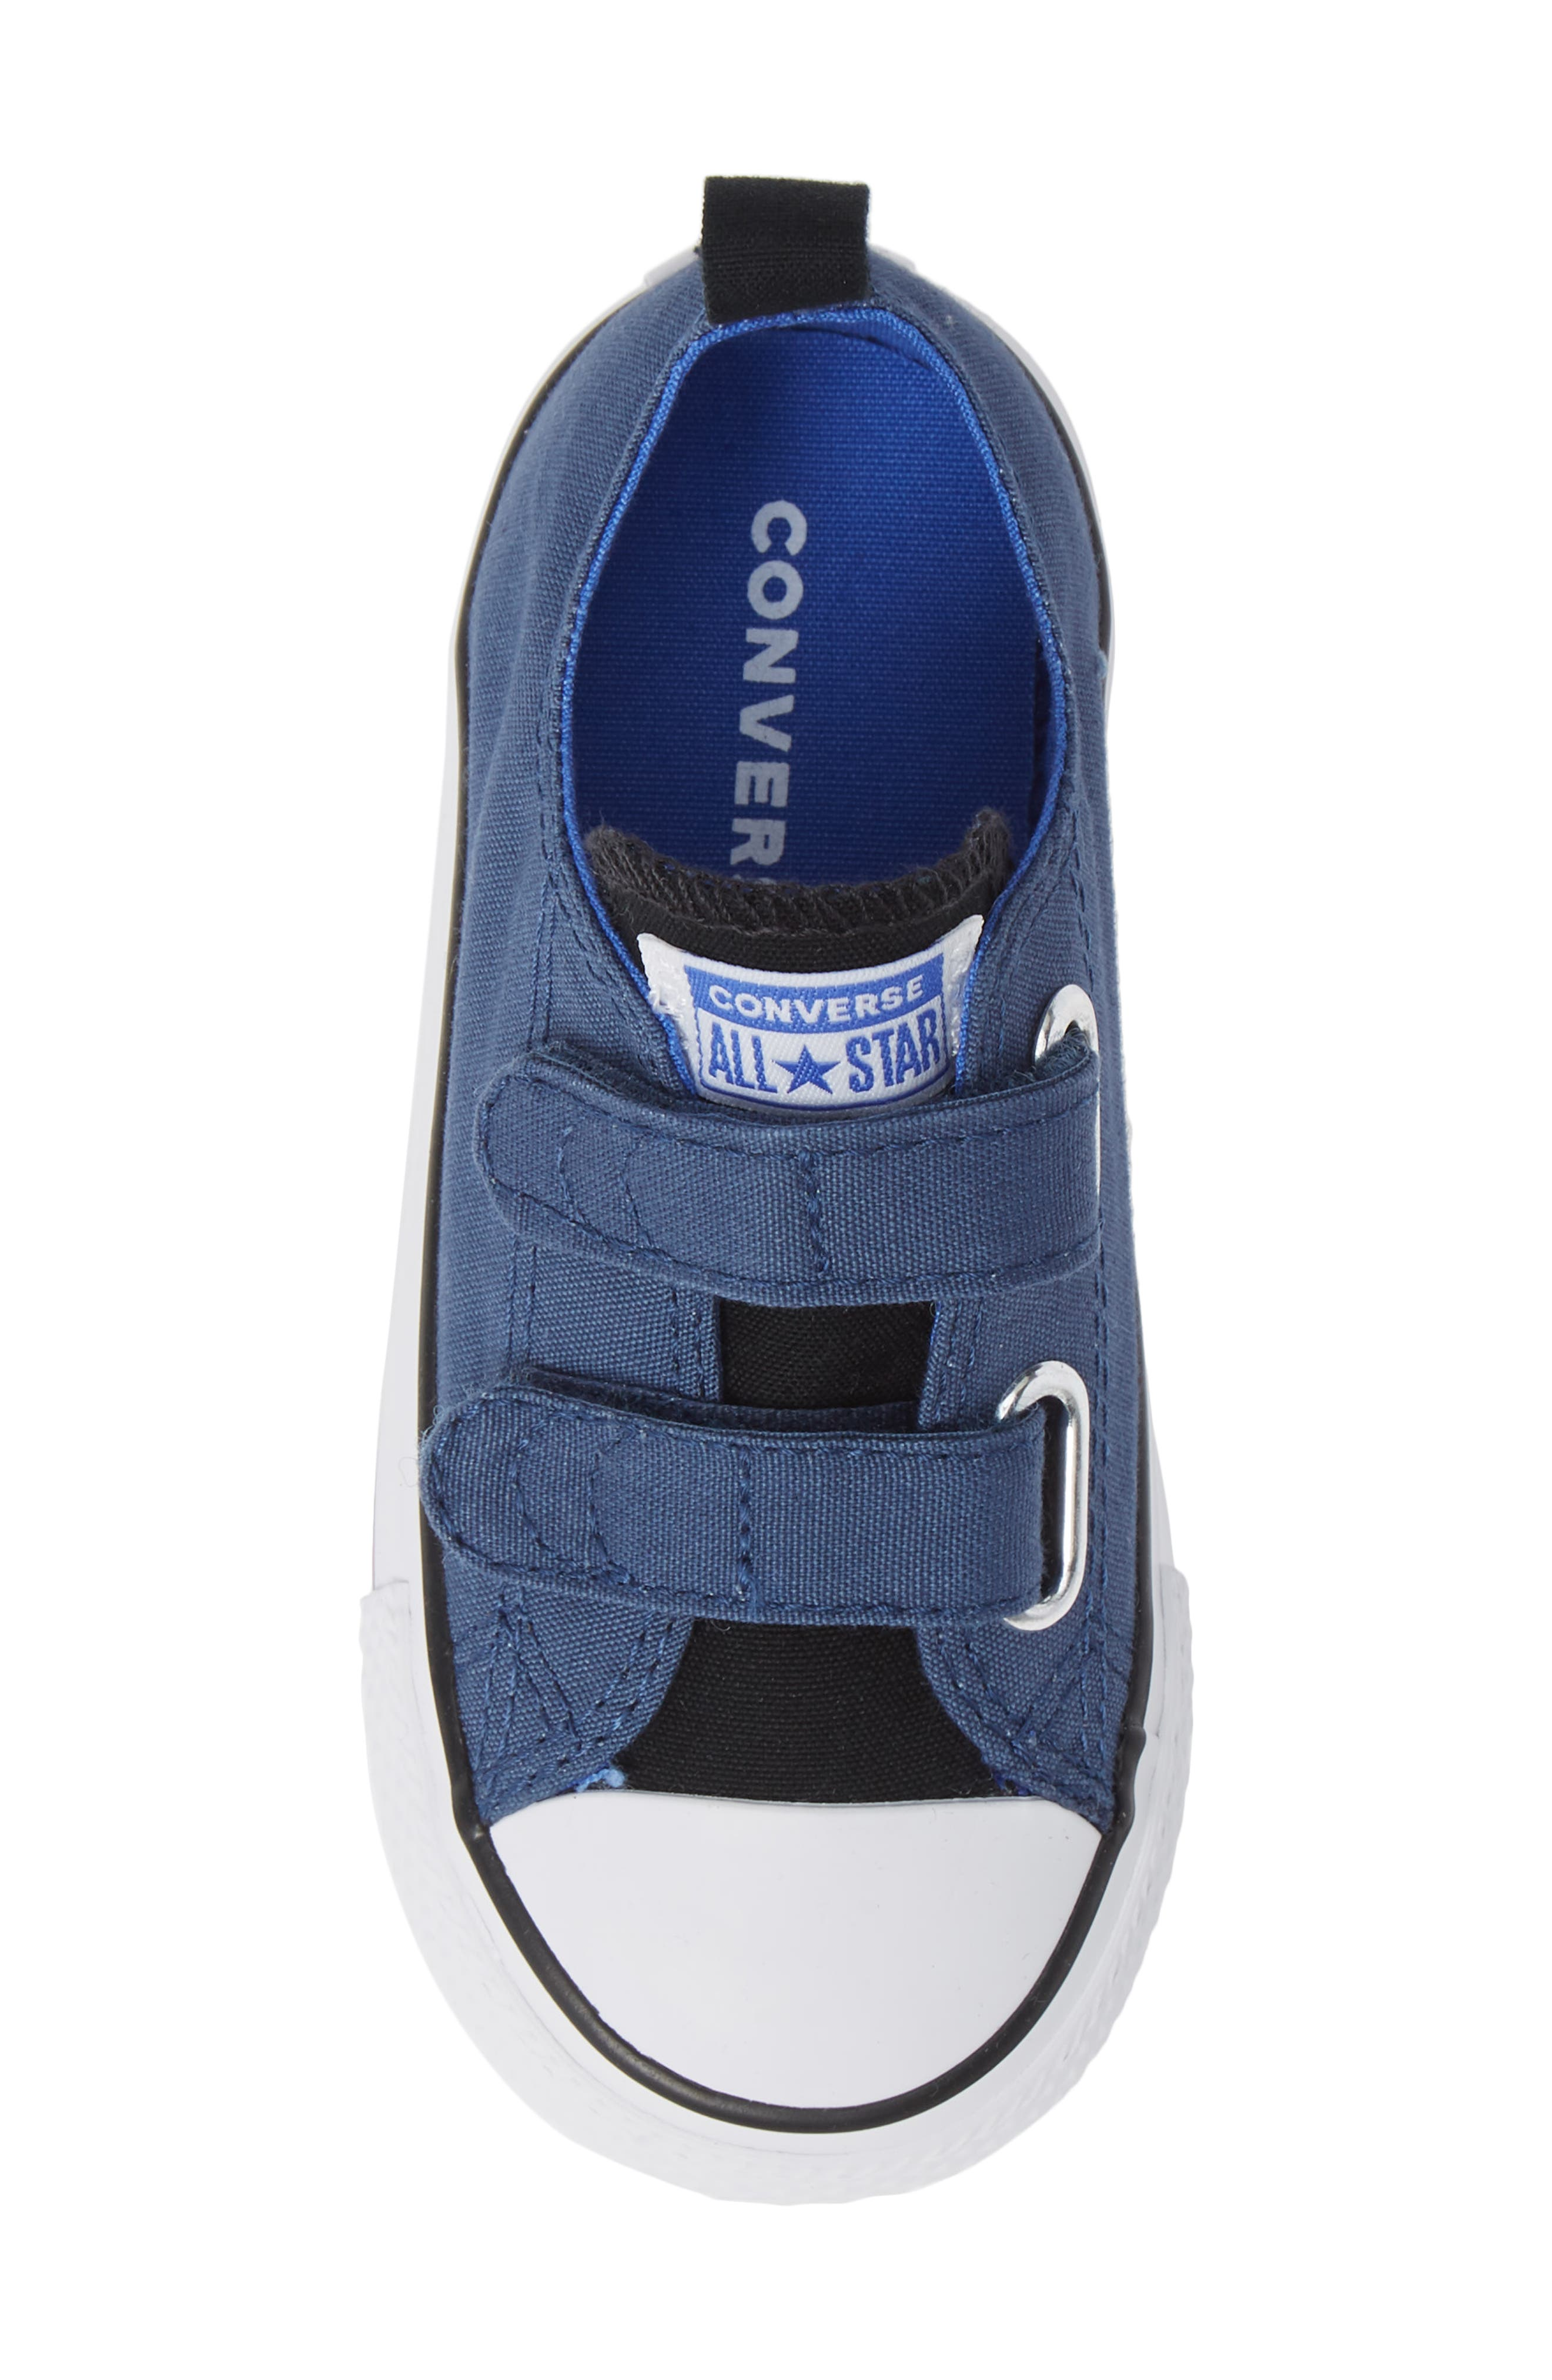 Chuck Taylor<sup>®</sup> 'Double Strap' Sneaker,                             Alternate thumbnail 5, color,                             MASON BLUE